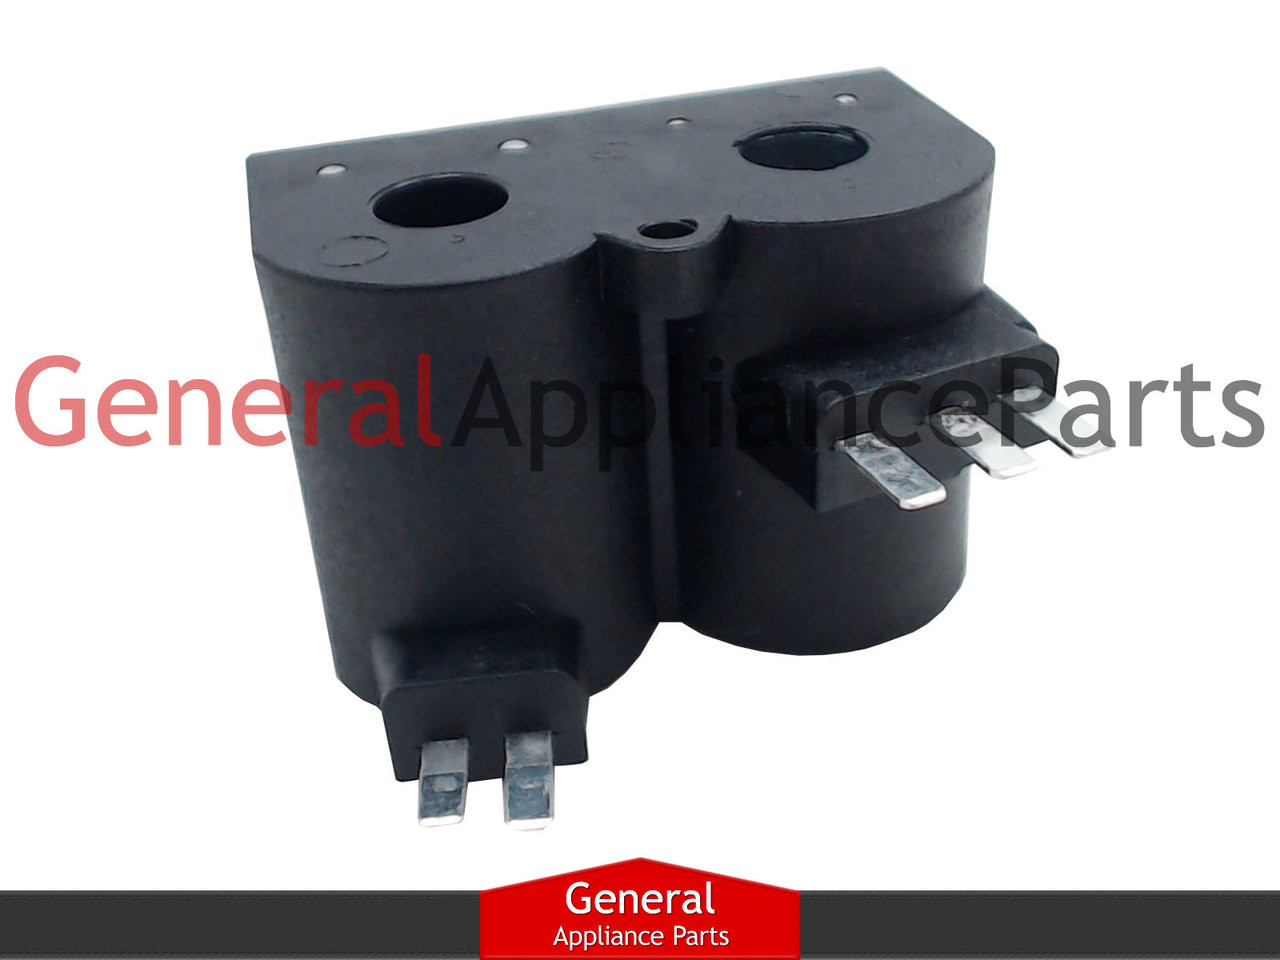 Climatek Dryer Gas Valve Ignition Solenoid Coil Replaces